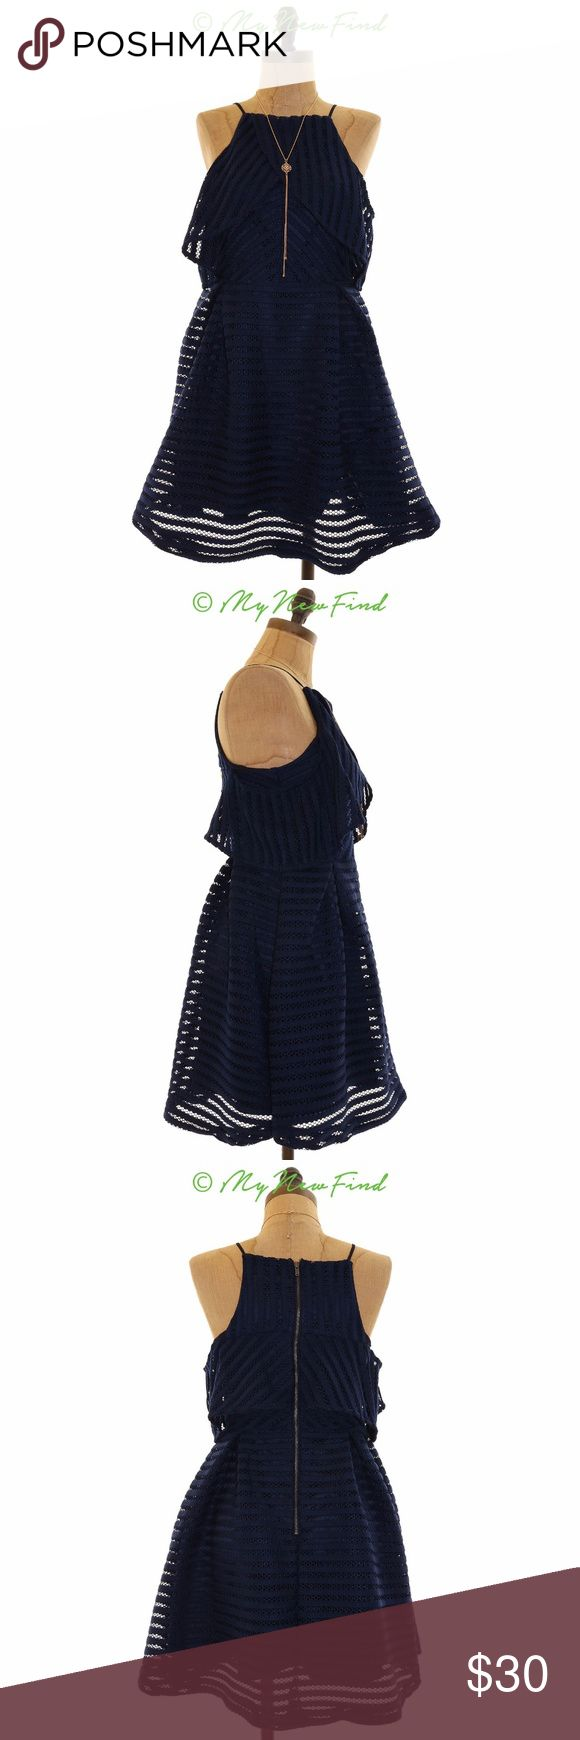 BARDOT JUNIOR DRAPE VERTICAL LIMIT DRESS BARDOT JUNIOR DRAPE VERTICAL LIMIT COLD SHOULDER DRESS BLUE GIRL'S SIZE 16 B11 Description Style: Shift Stretch: Little Closure: Zips Lining: Yes Weight: Medium weight.  Size: Kid's 16 (XL) Length: 34 in. Waist: 27 in. Chest: 28 in. Sleeve: n/a  --->All measurements are taken with the garment lying flat,  and photos may be taken with clipping and/or pinning.  Condition: Excellent   Item has no found flaws.  Materials/Color   Polyester. Hand wash warm…